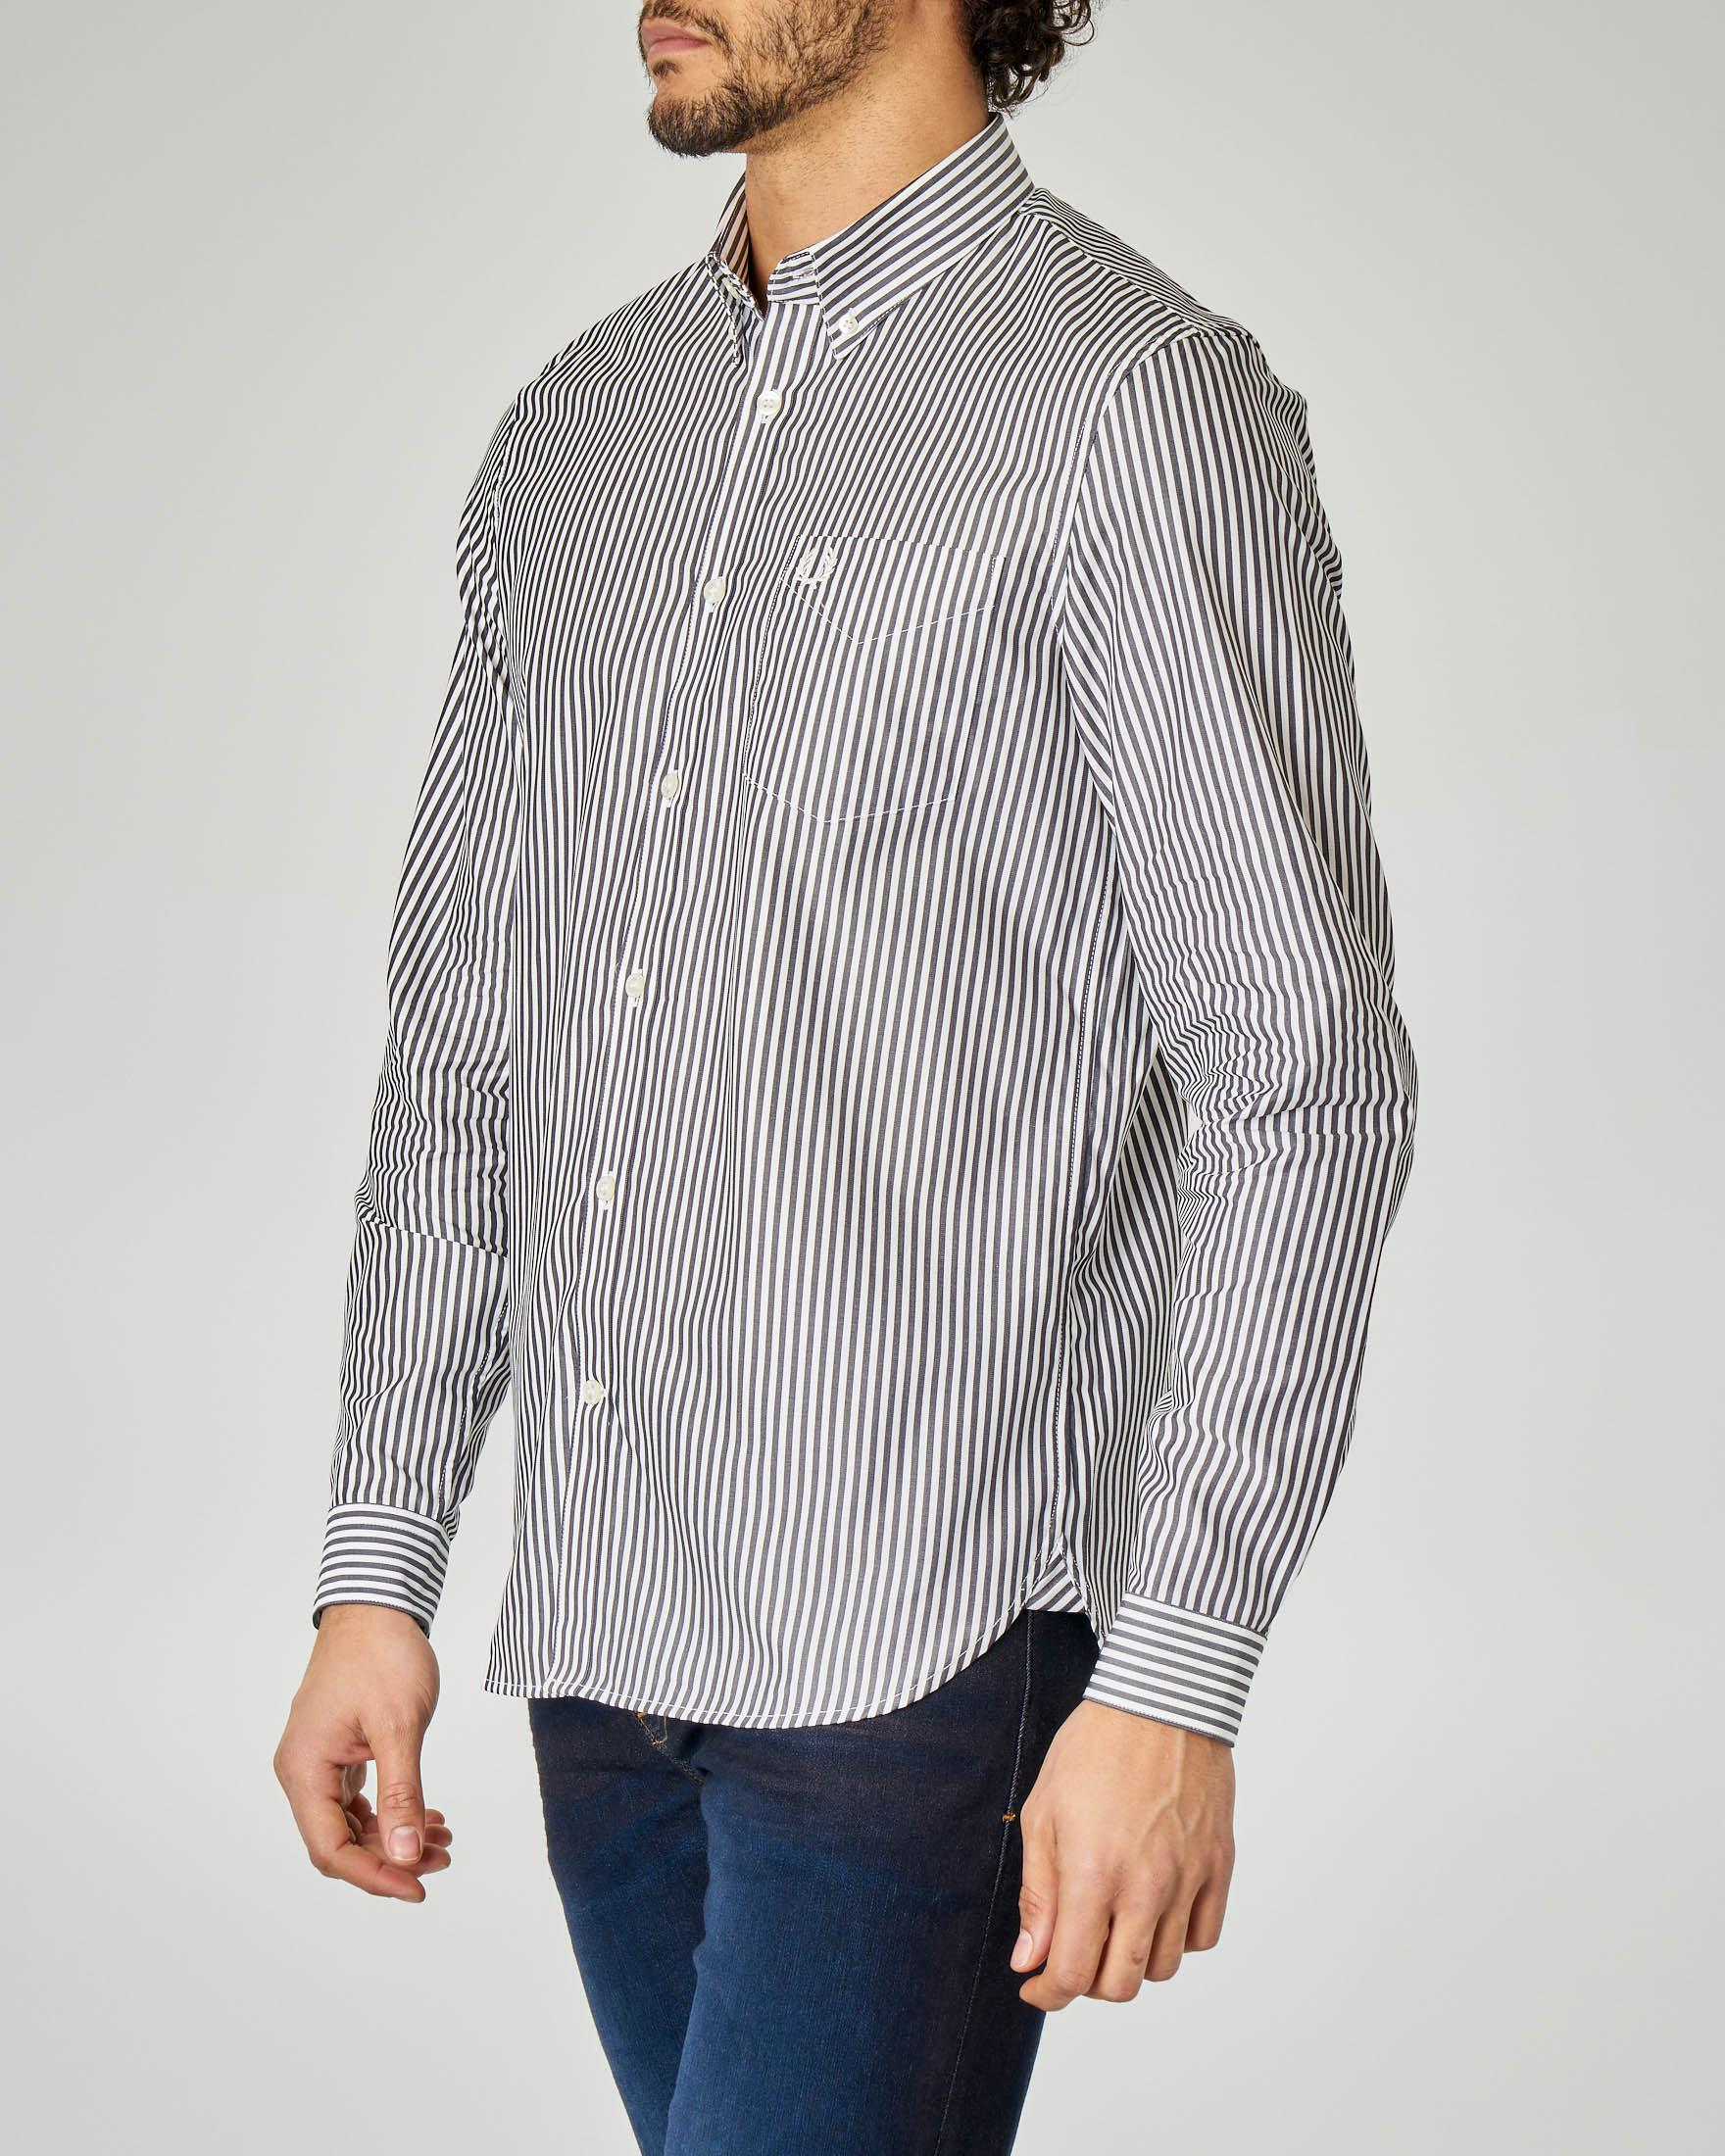 Camicia a righe blu e bianche button down con taschino